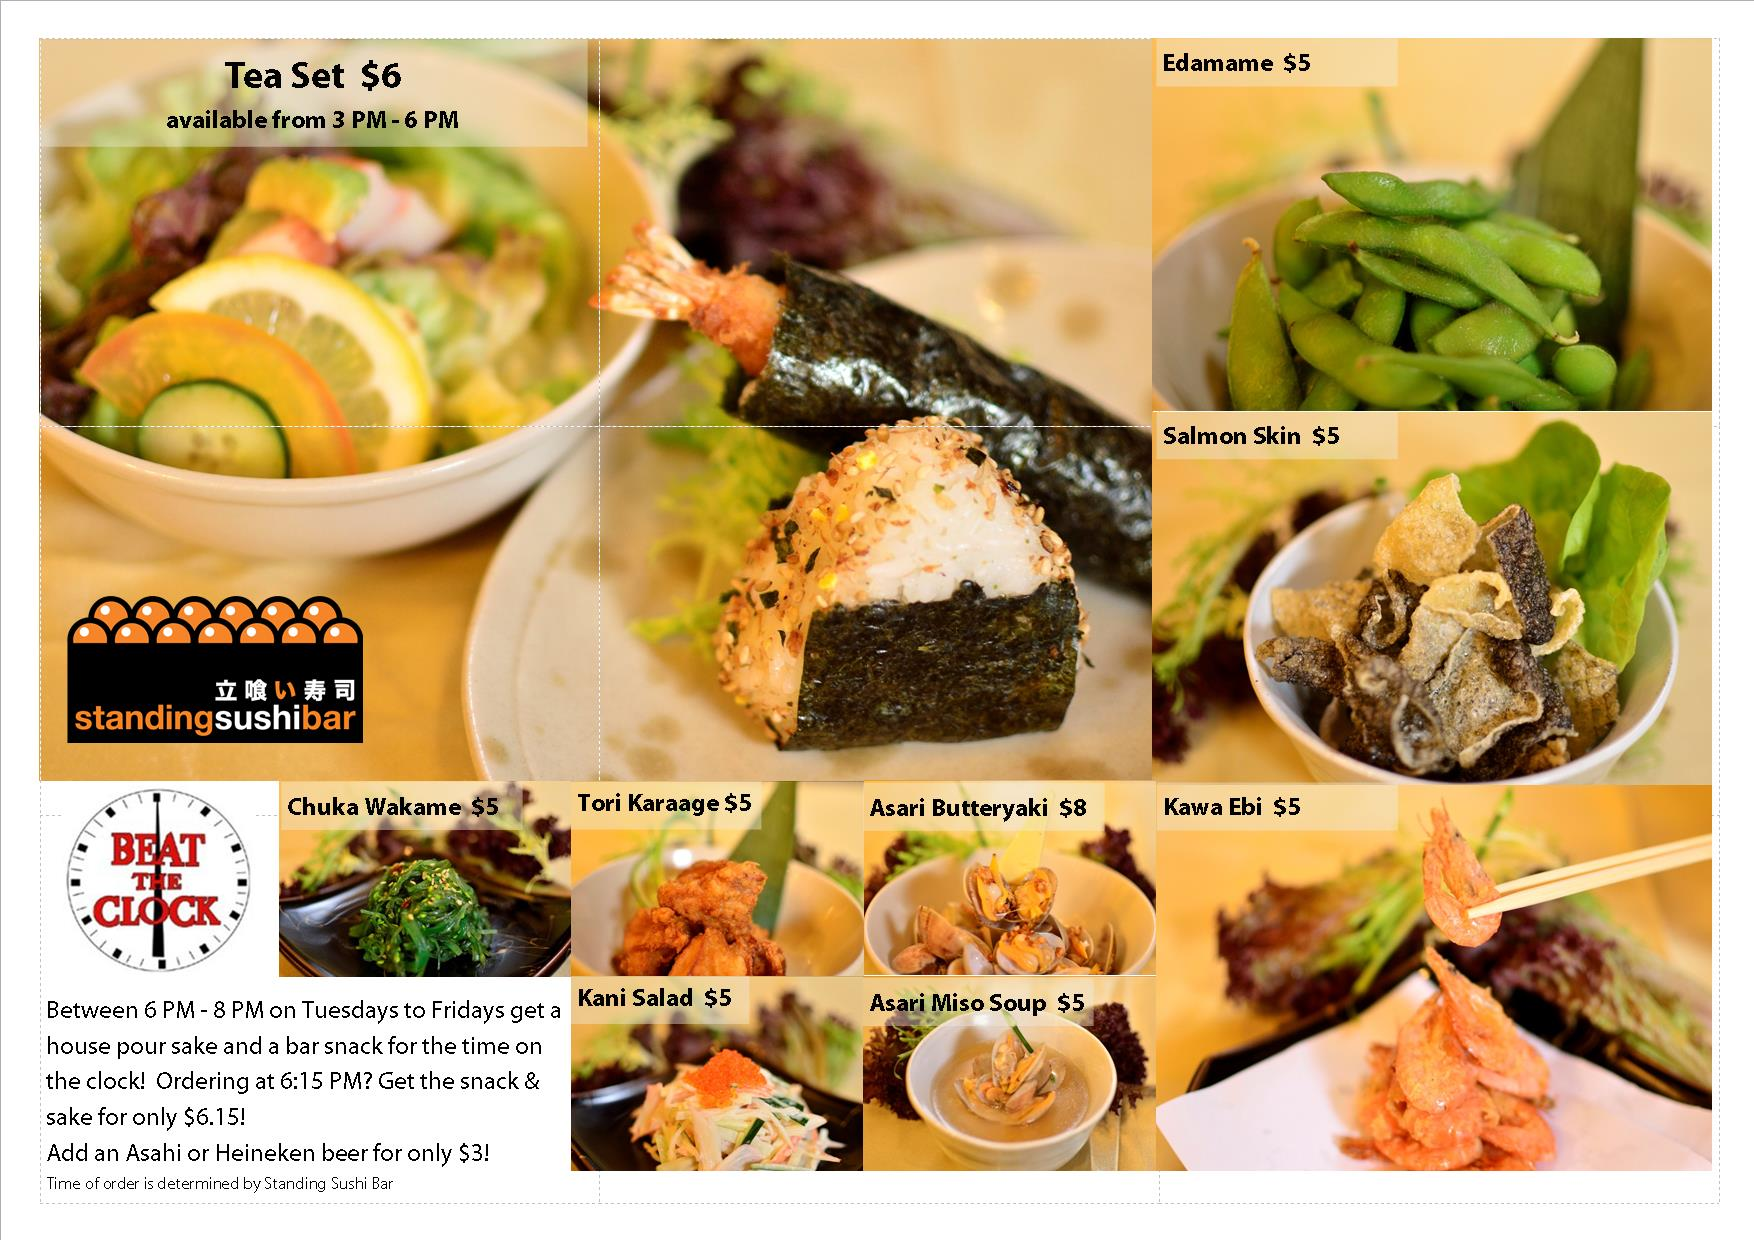 Beat the Clock snack menu at Marina Bay Link Mall. Onigiri, sushi, temaki, salmon skin, and more!